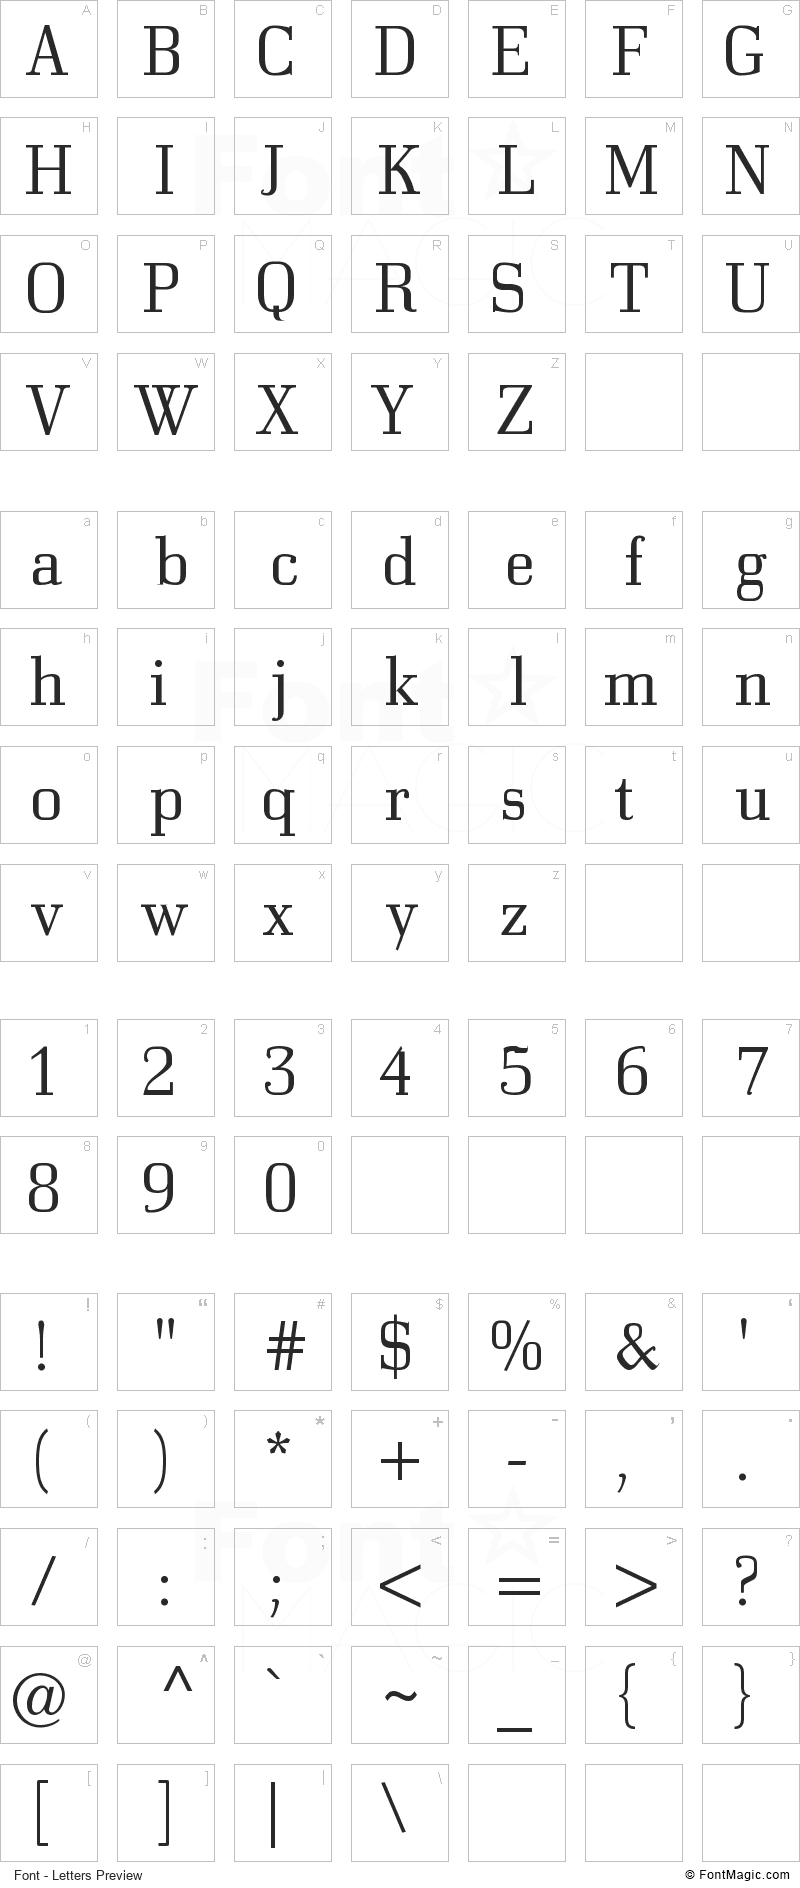 Bodonitown Font - All Latters Preview Chart